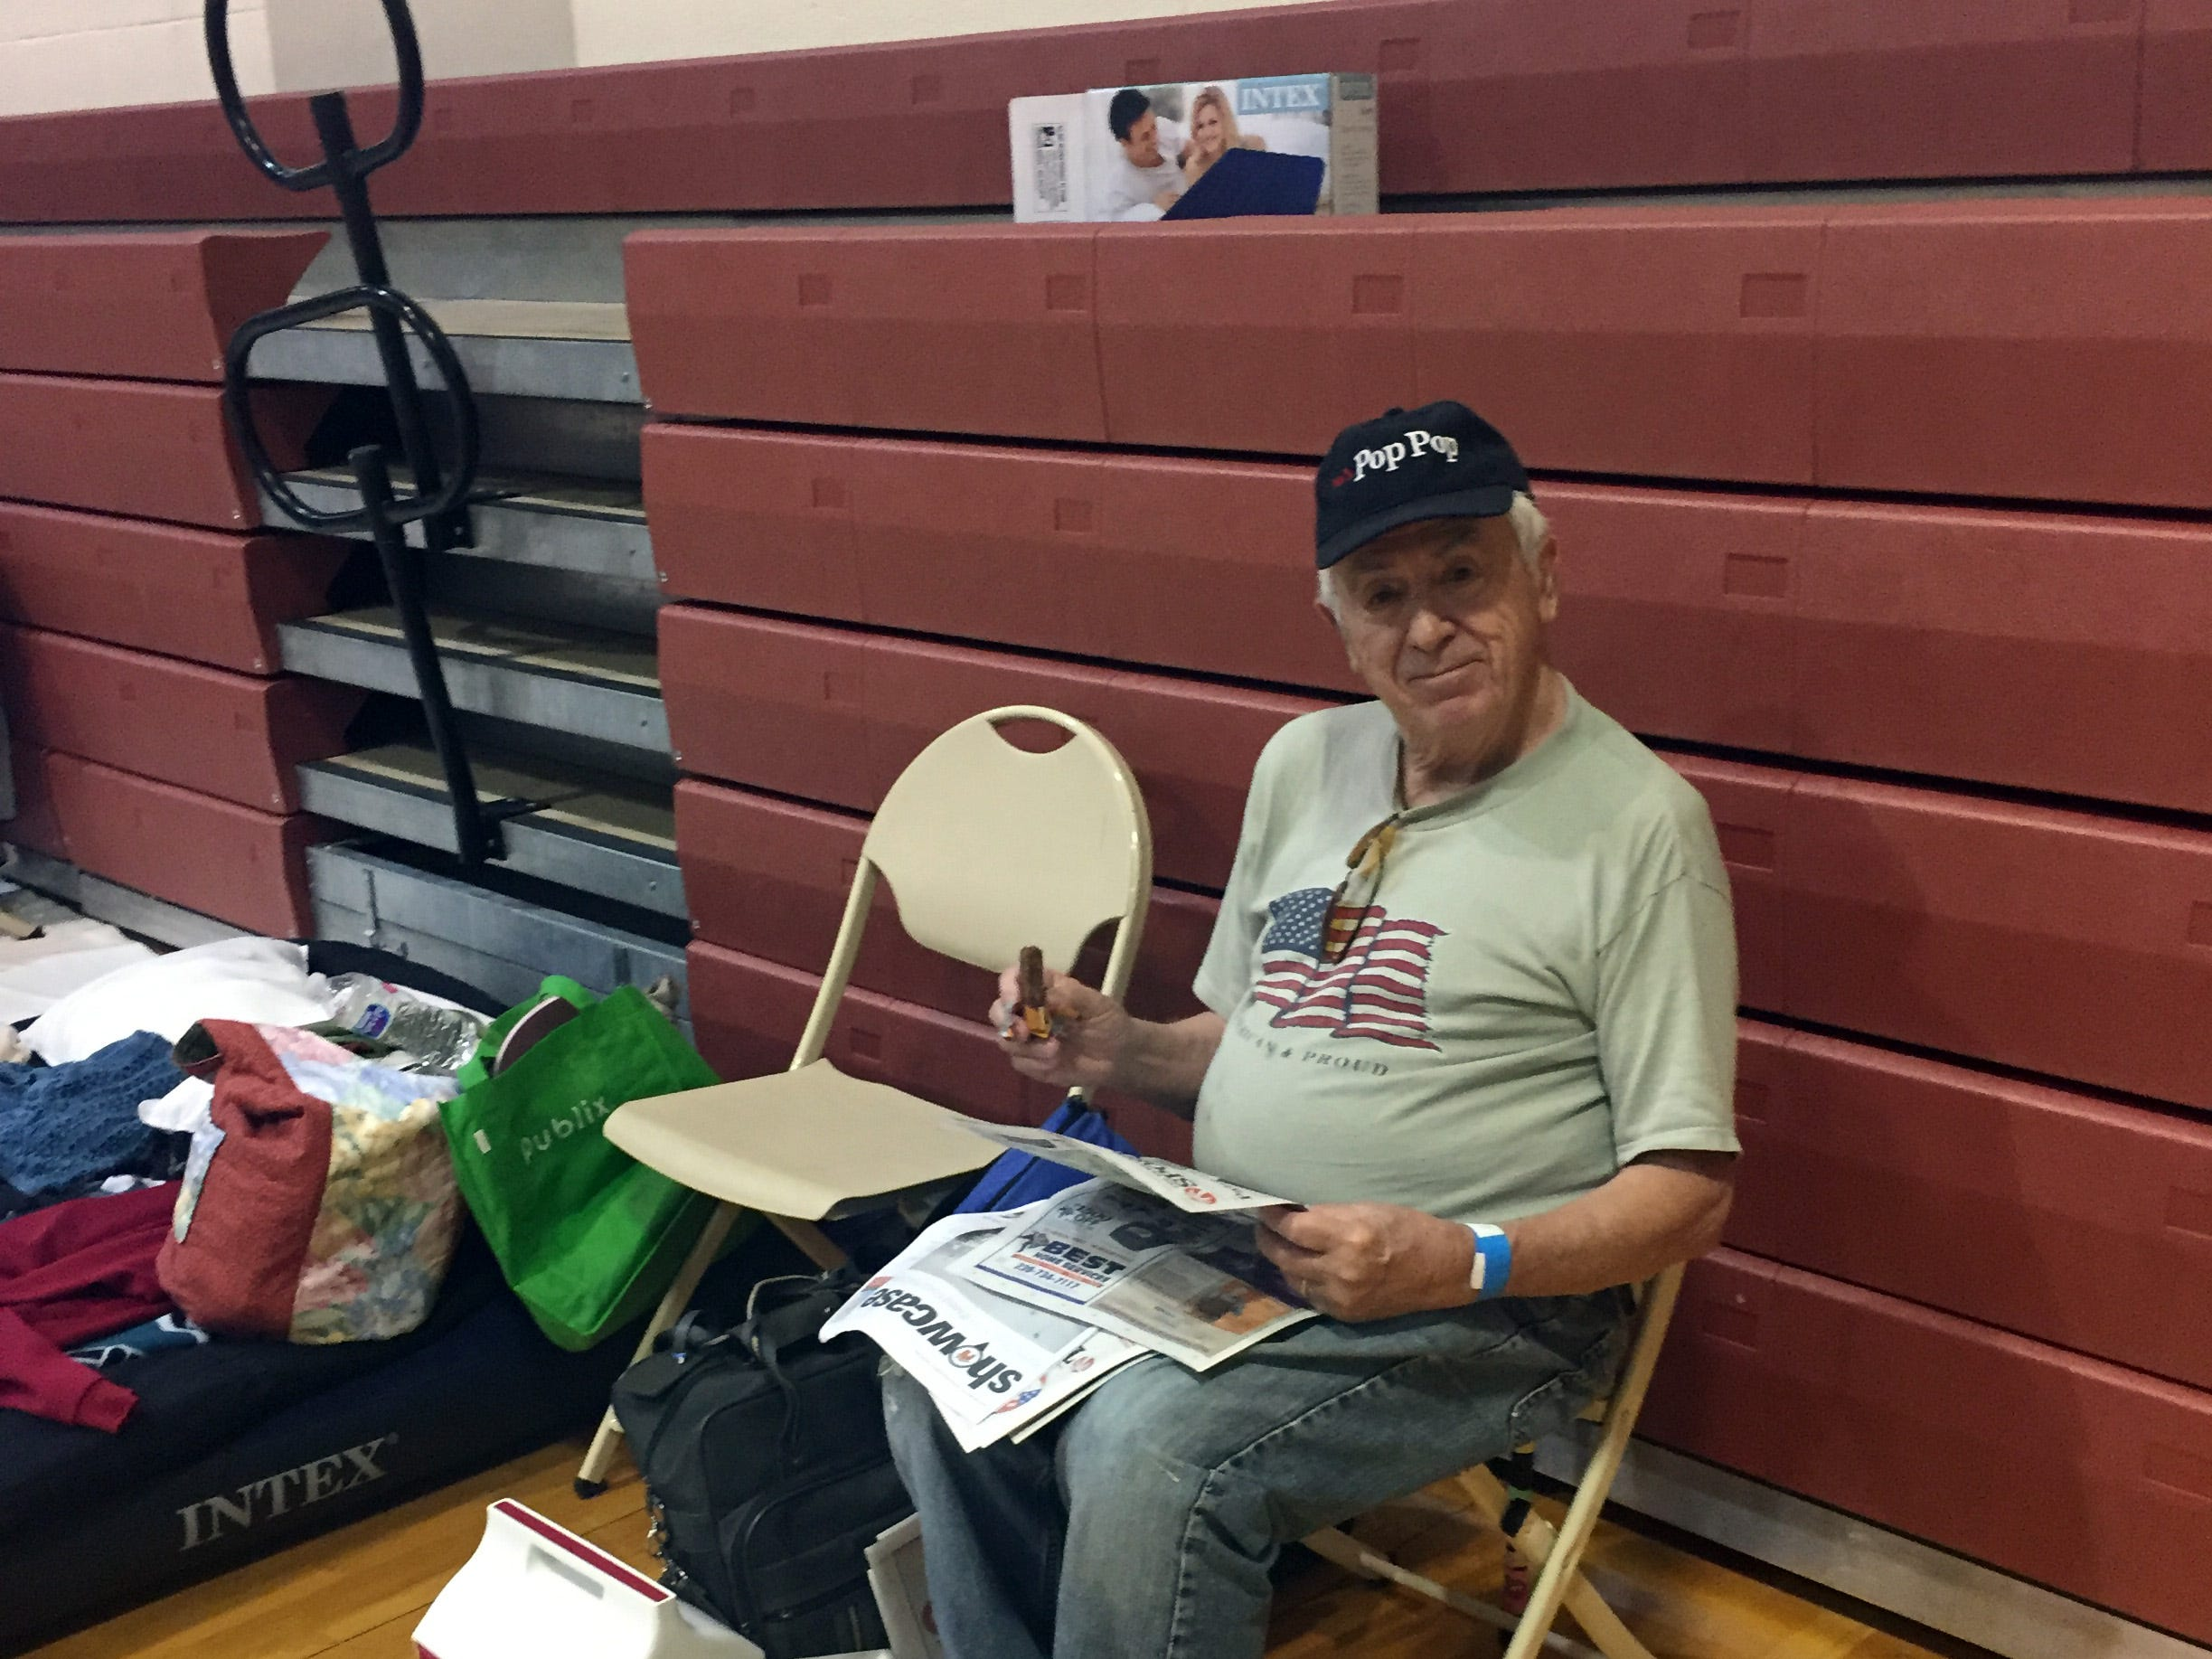 Theresa Galante and her husband, Tony, stayed at the Estero Recreation Center during Hurricane Irma.